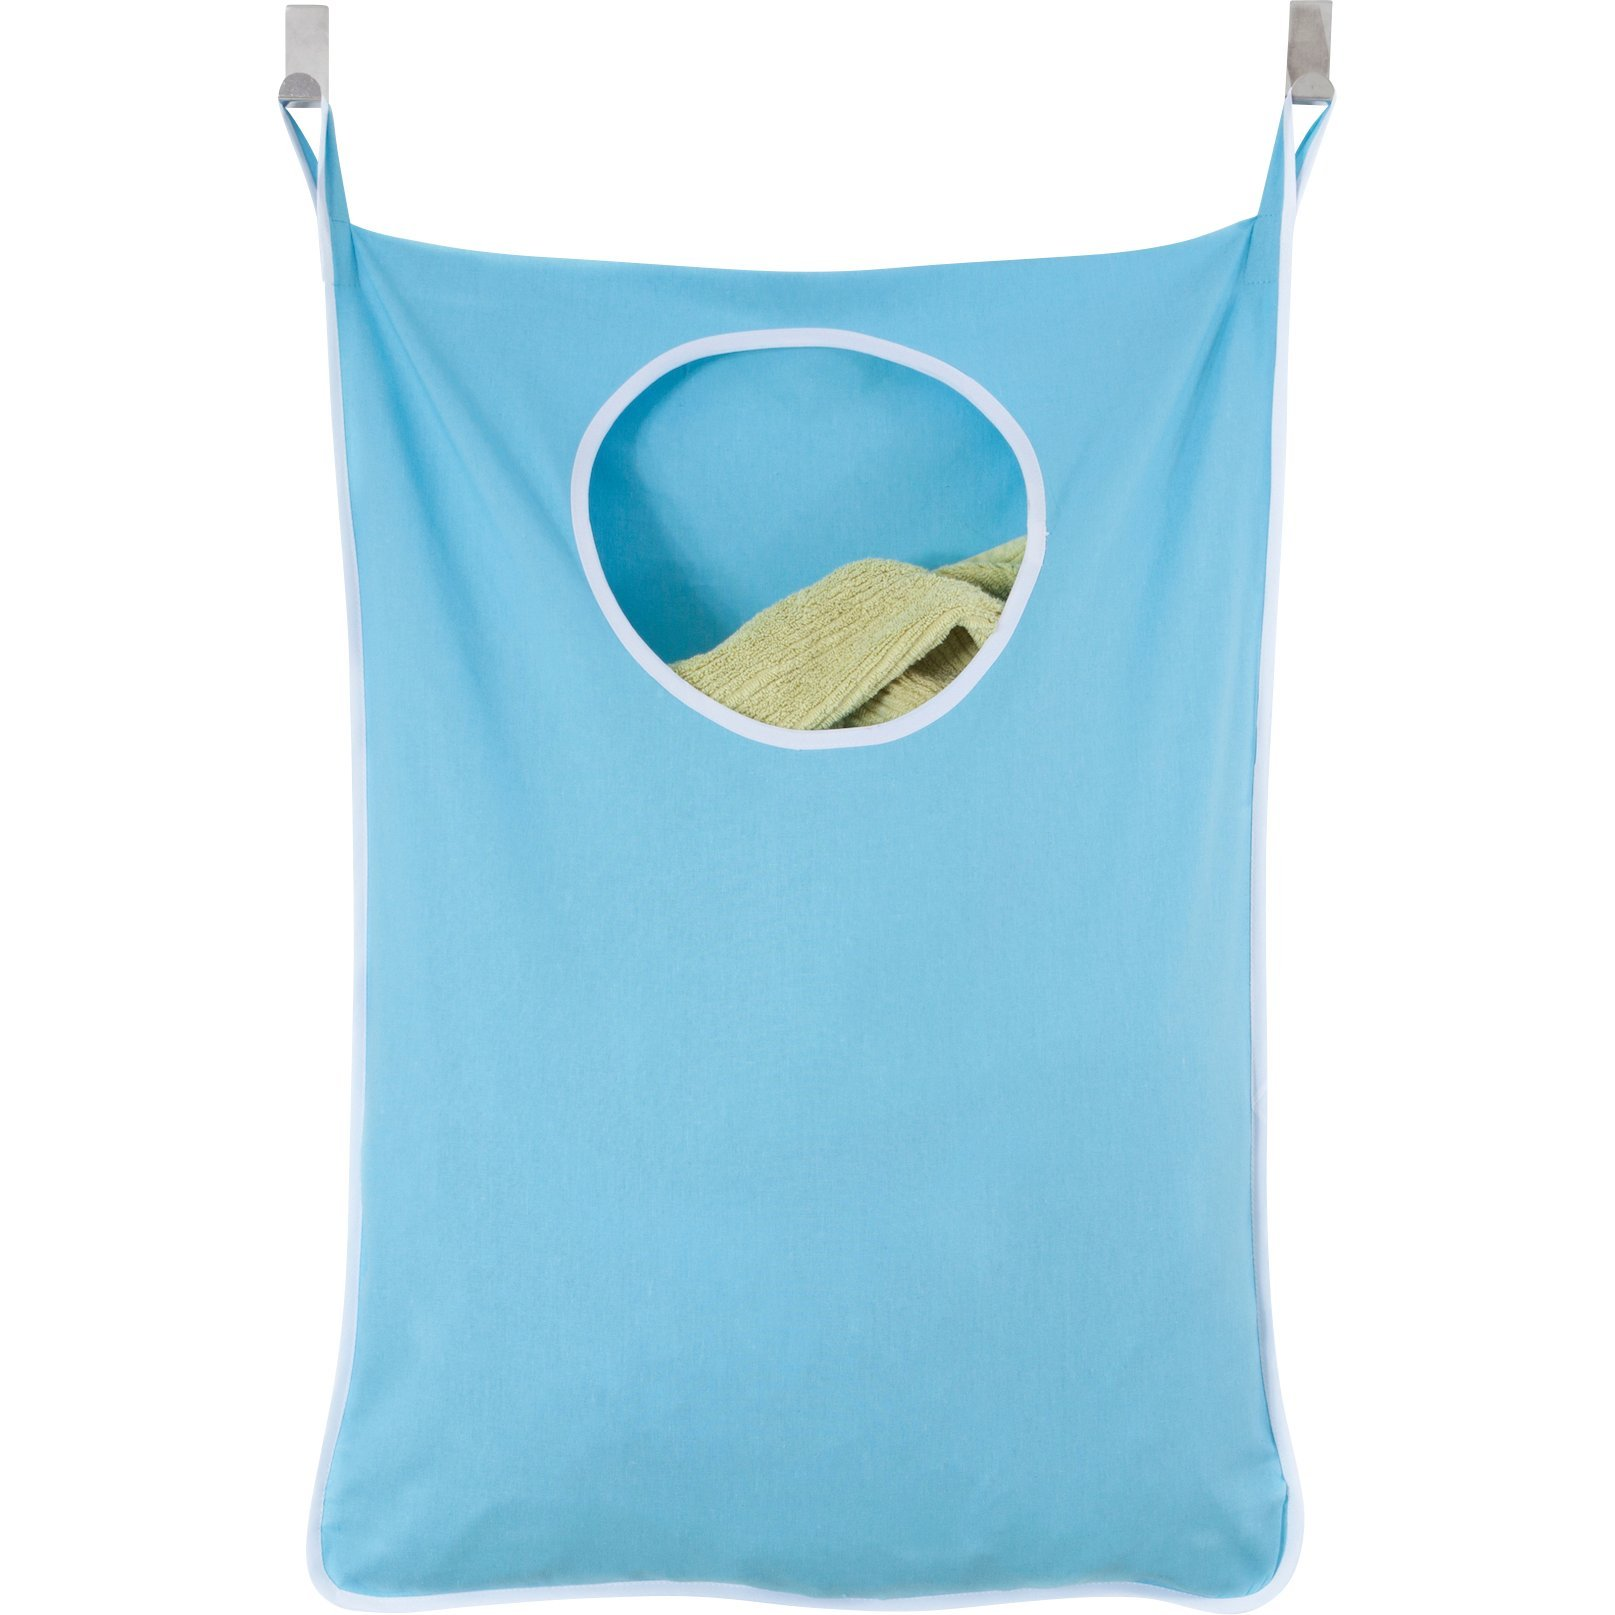 Laundry Nook Door-Hanging Laundry Hamper with Stainless Steel Hooks (Blue)